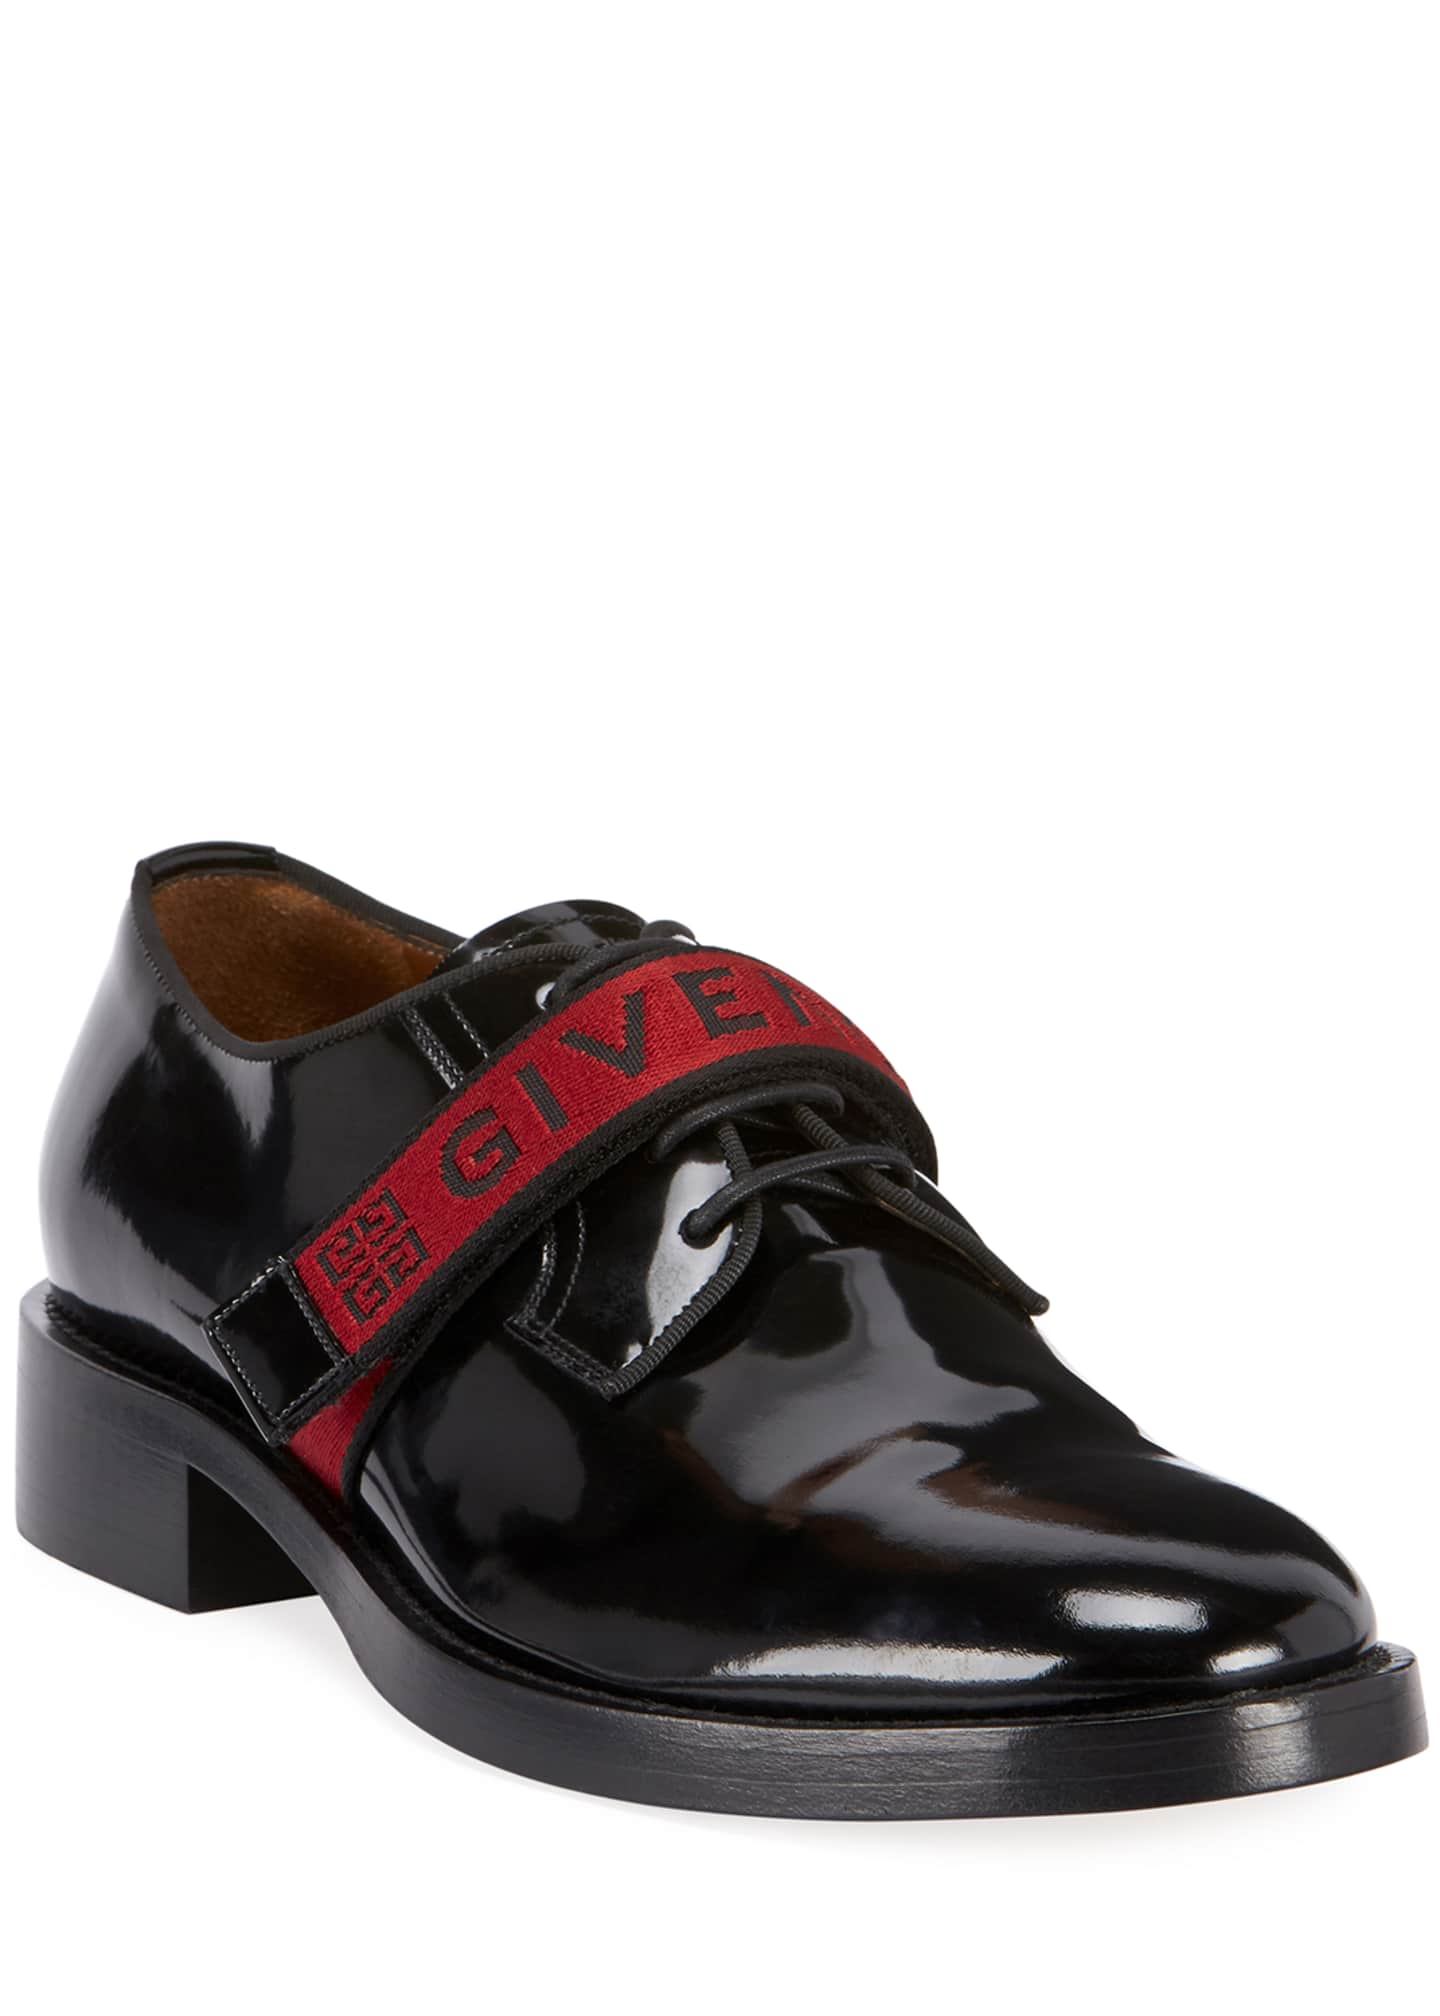 Givenchy Men's Cruz Derby Shoes in Leather